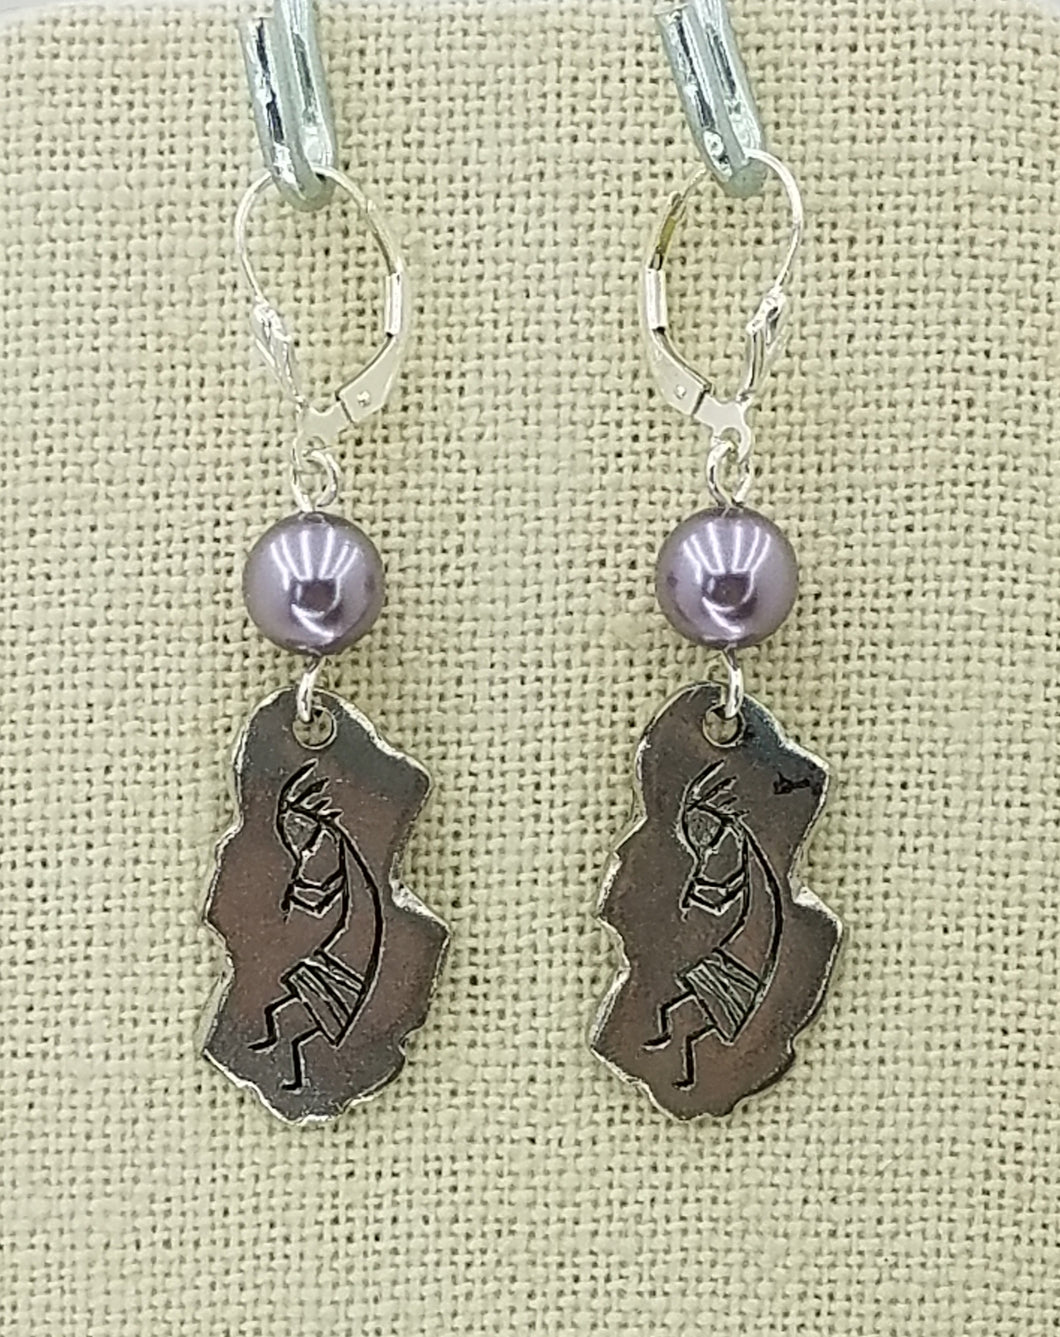 Lead Free Pewter Kokopelli Petroglyph & Mauve Swarovski Pearl & Sterling Silver Leverback Earrings - 2 1/4